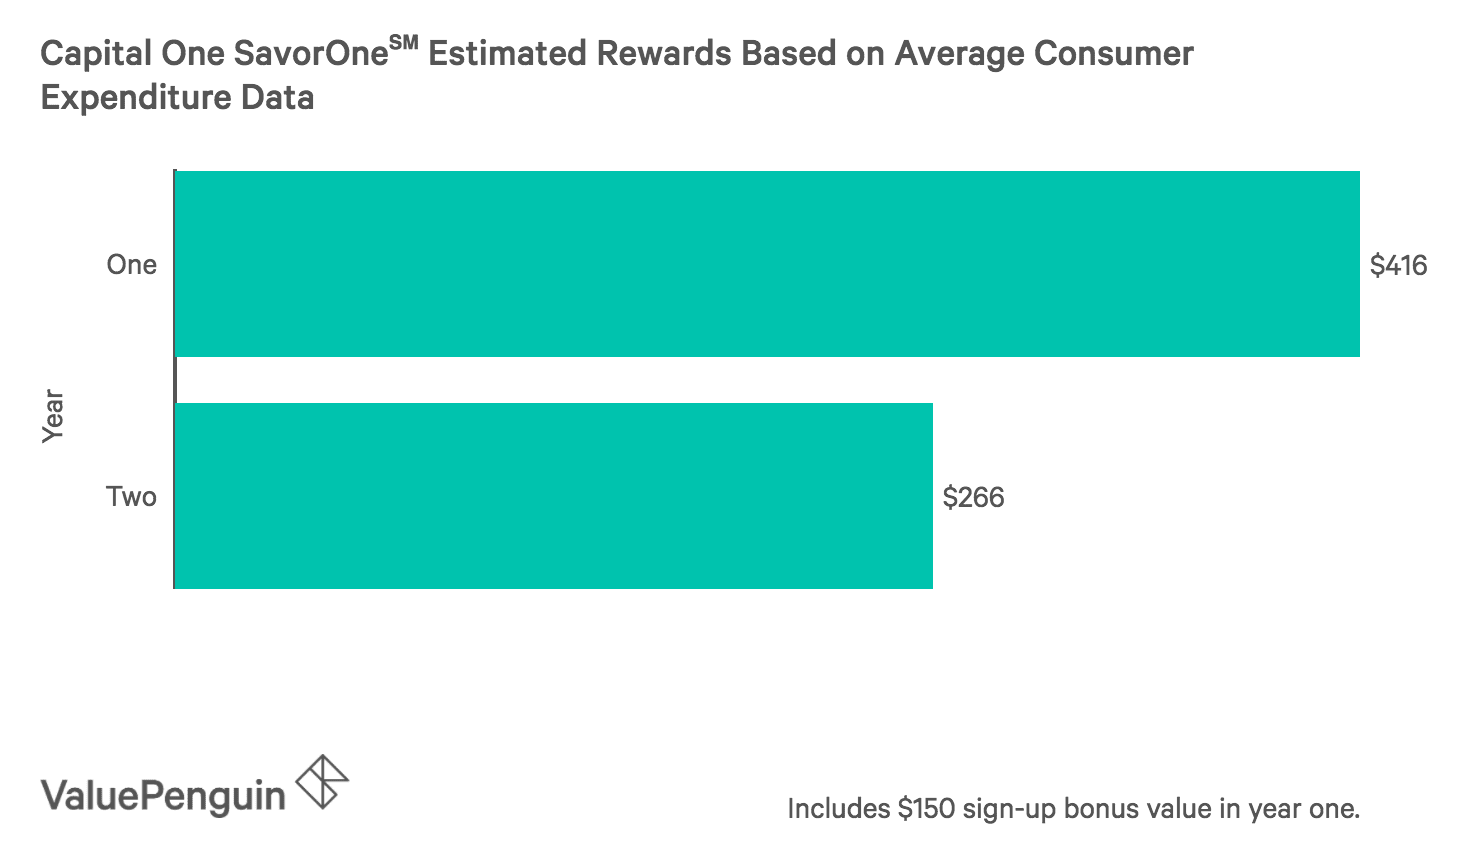 A graph showing the estimated rewards for the SavorOne credit card, given average consumer expenditures.